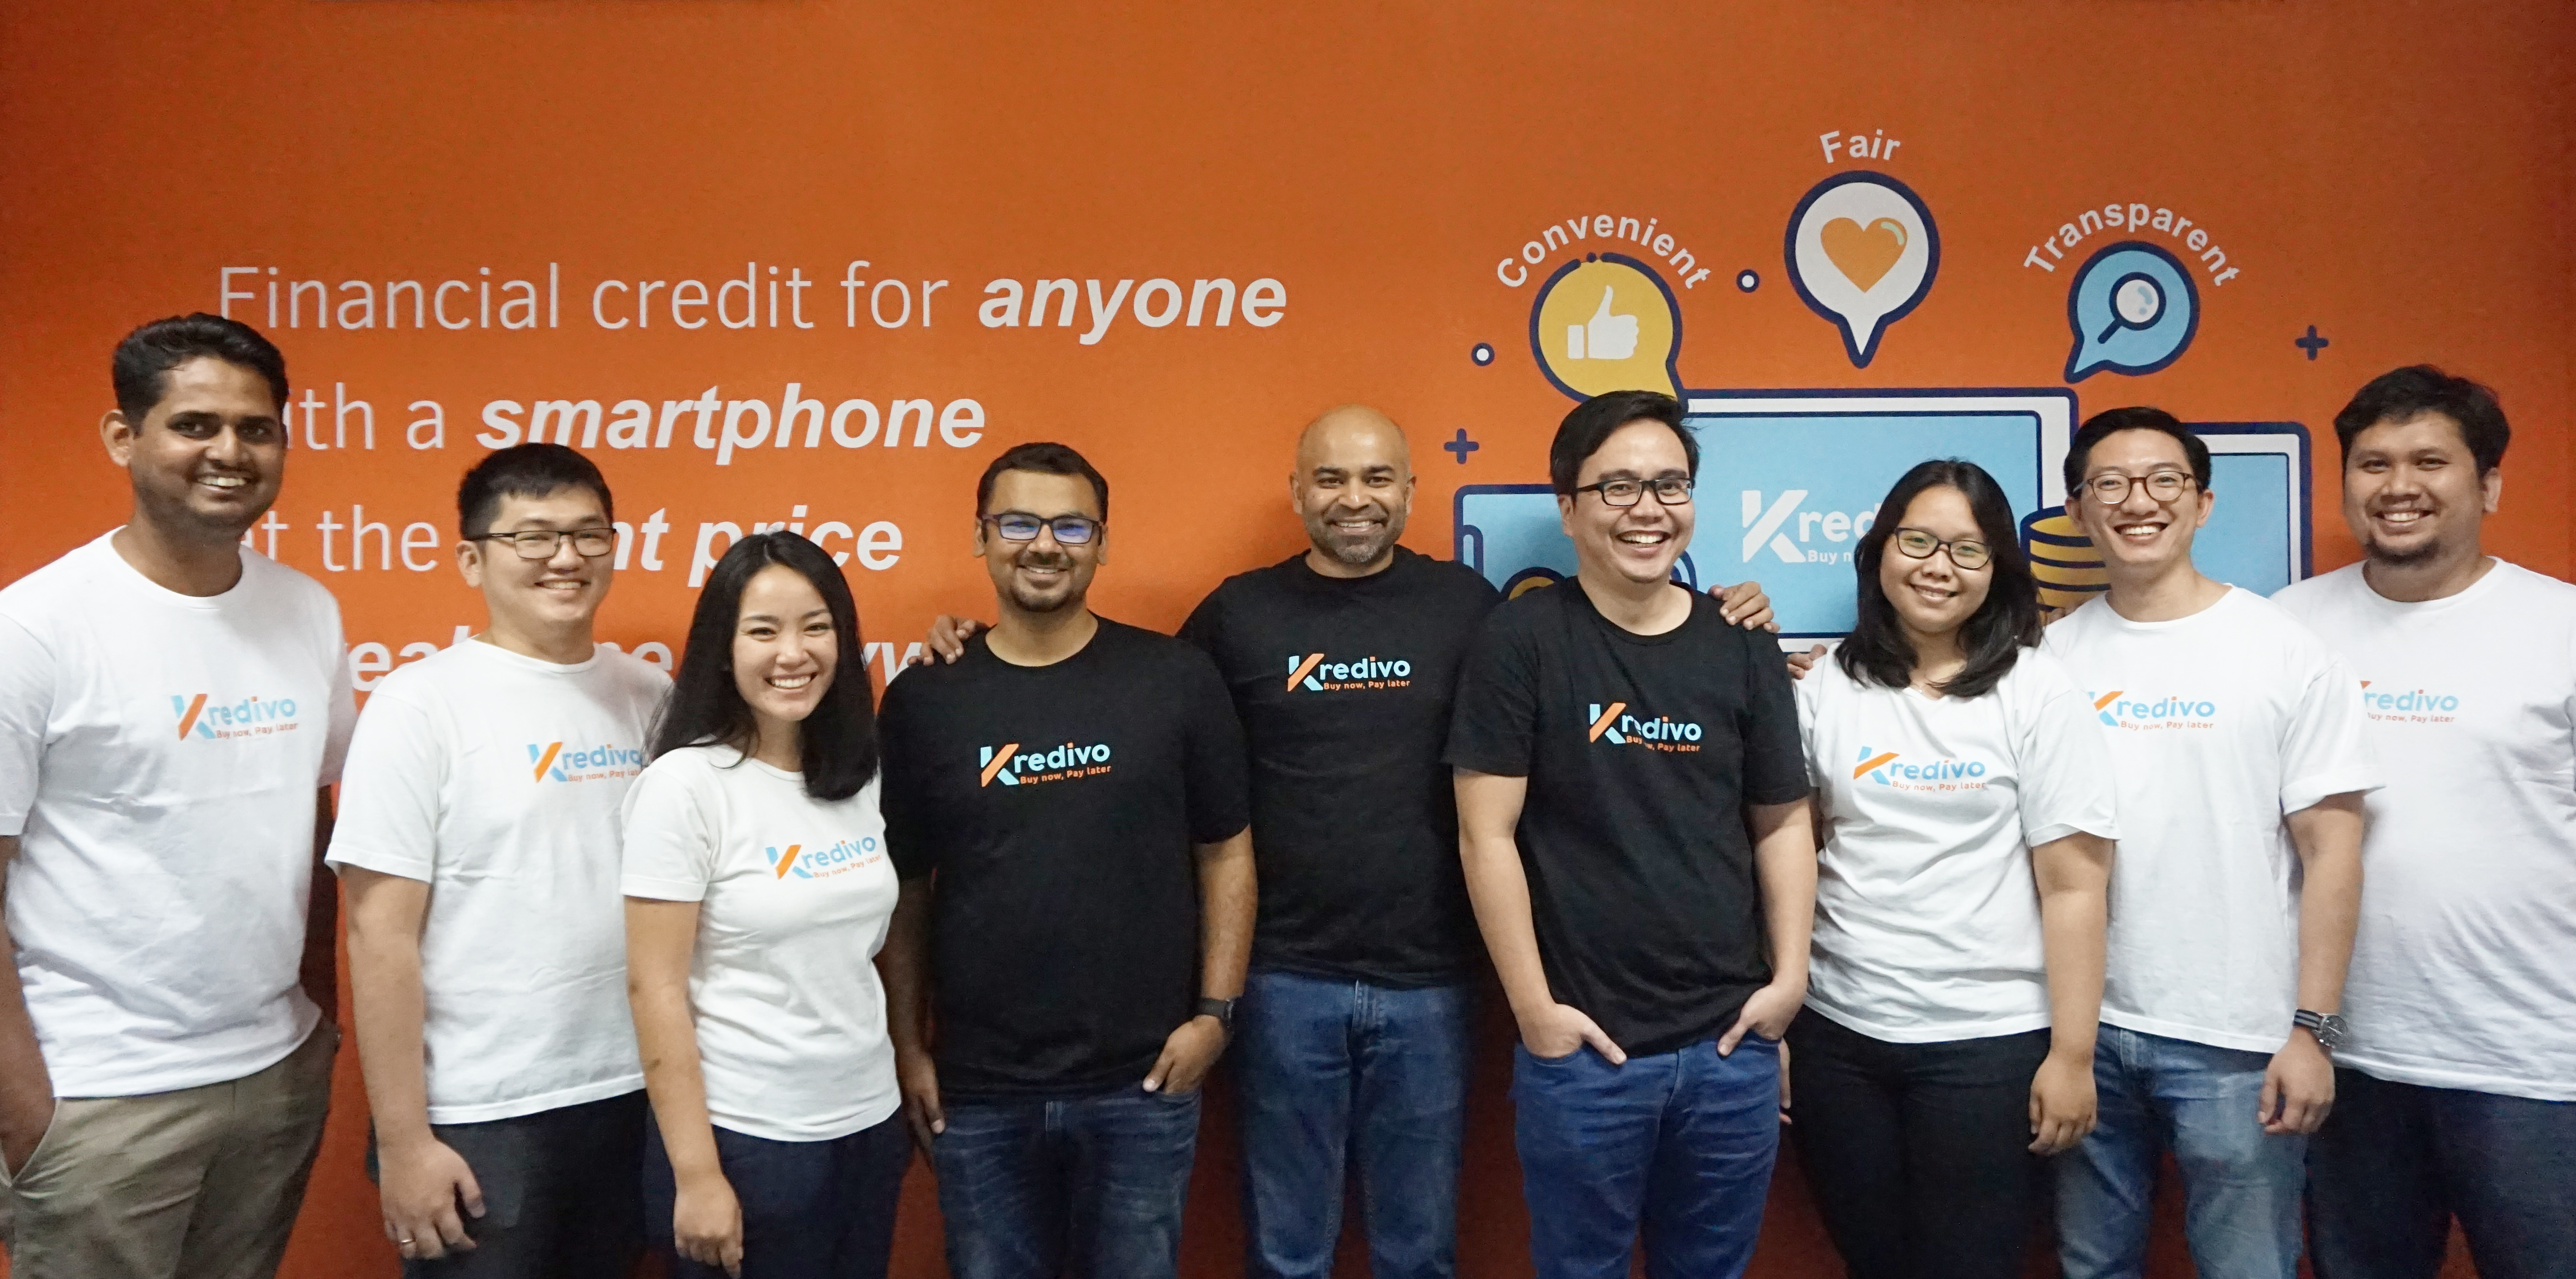 Kredivo's parent firm FinAccel raises $90M to expand its credit lending platform in Southeast Asia